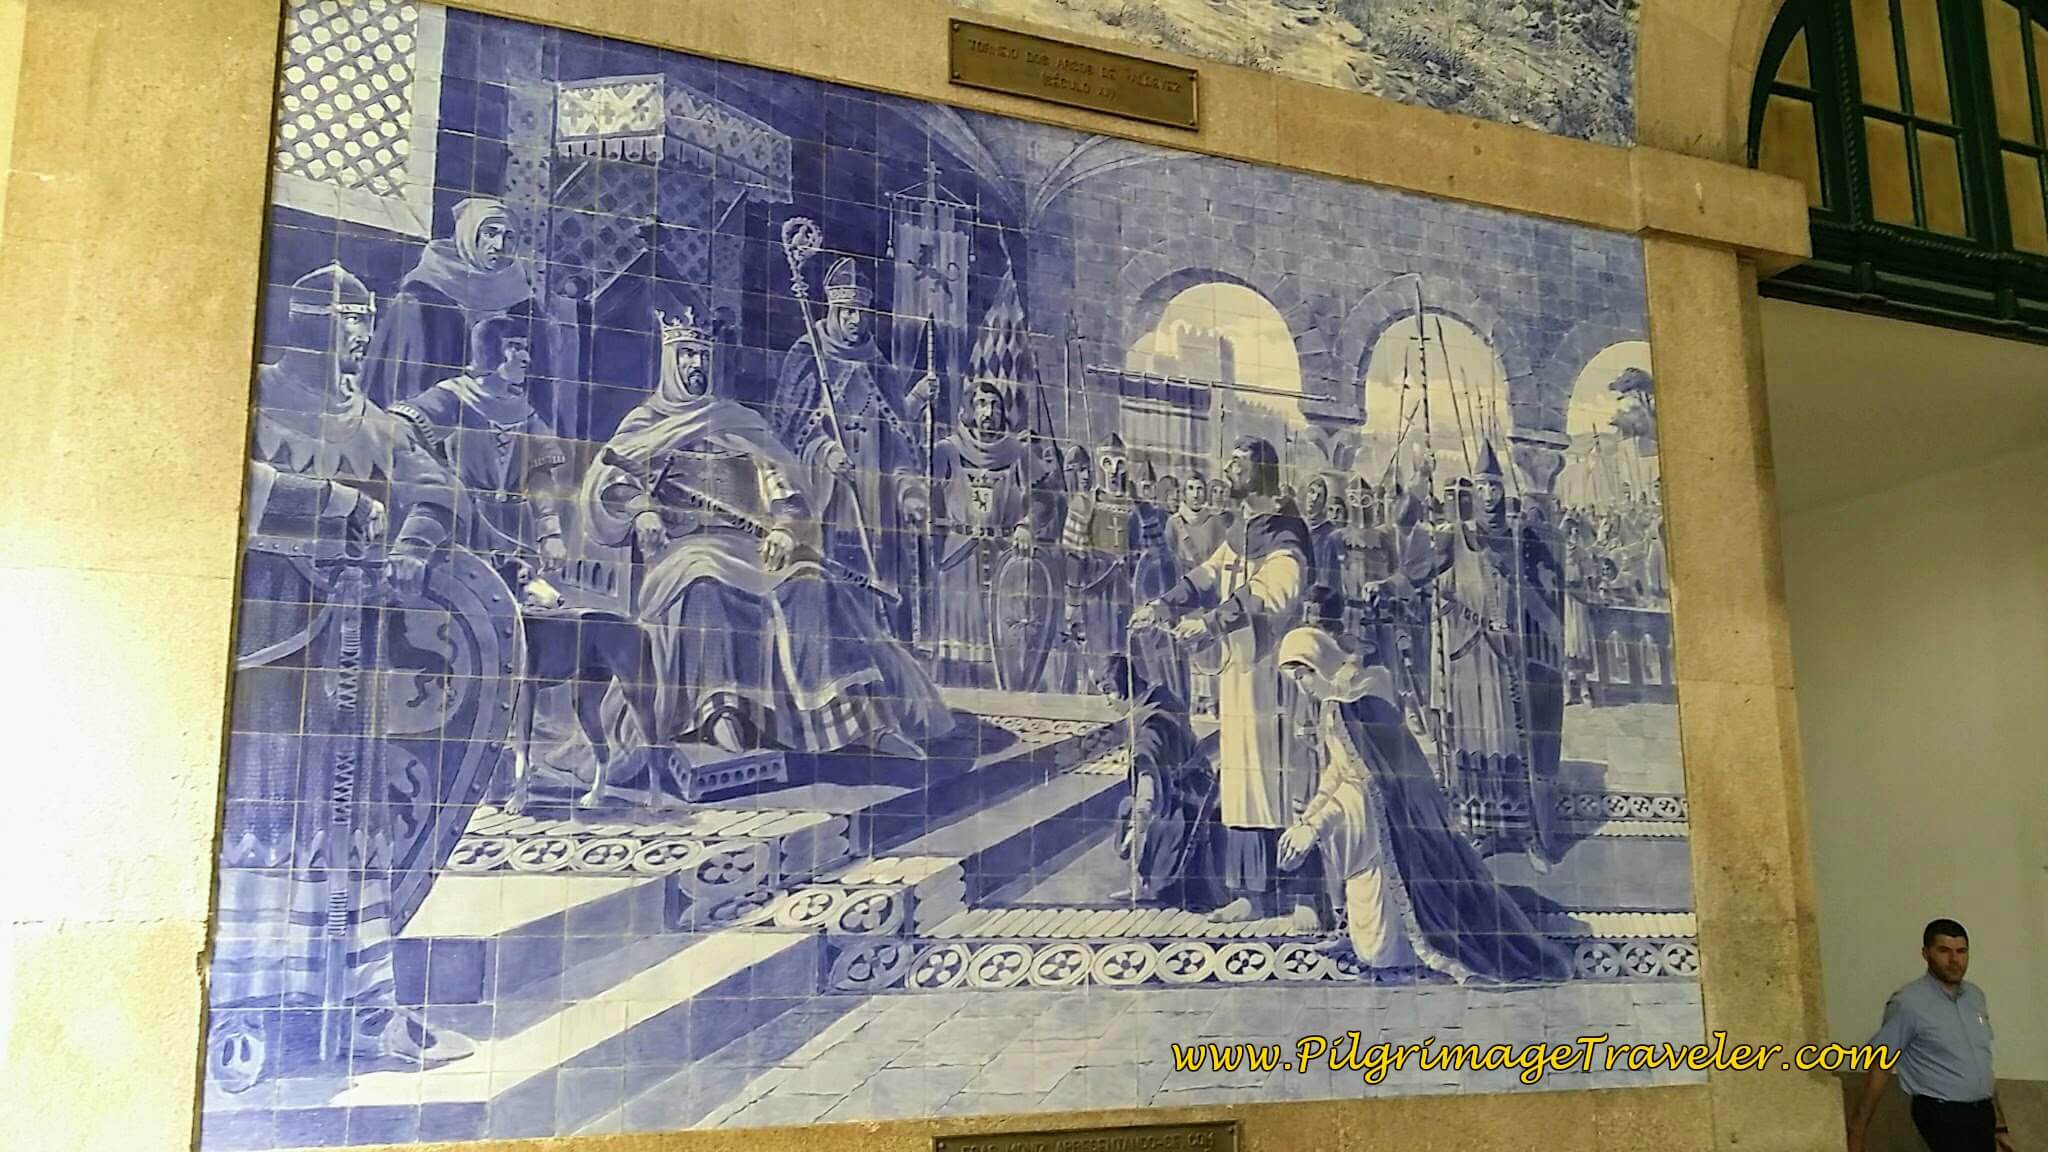 Mural of a Royal Scene in the São Bento Train Station in Porto, Portugal